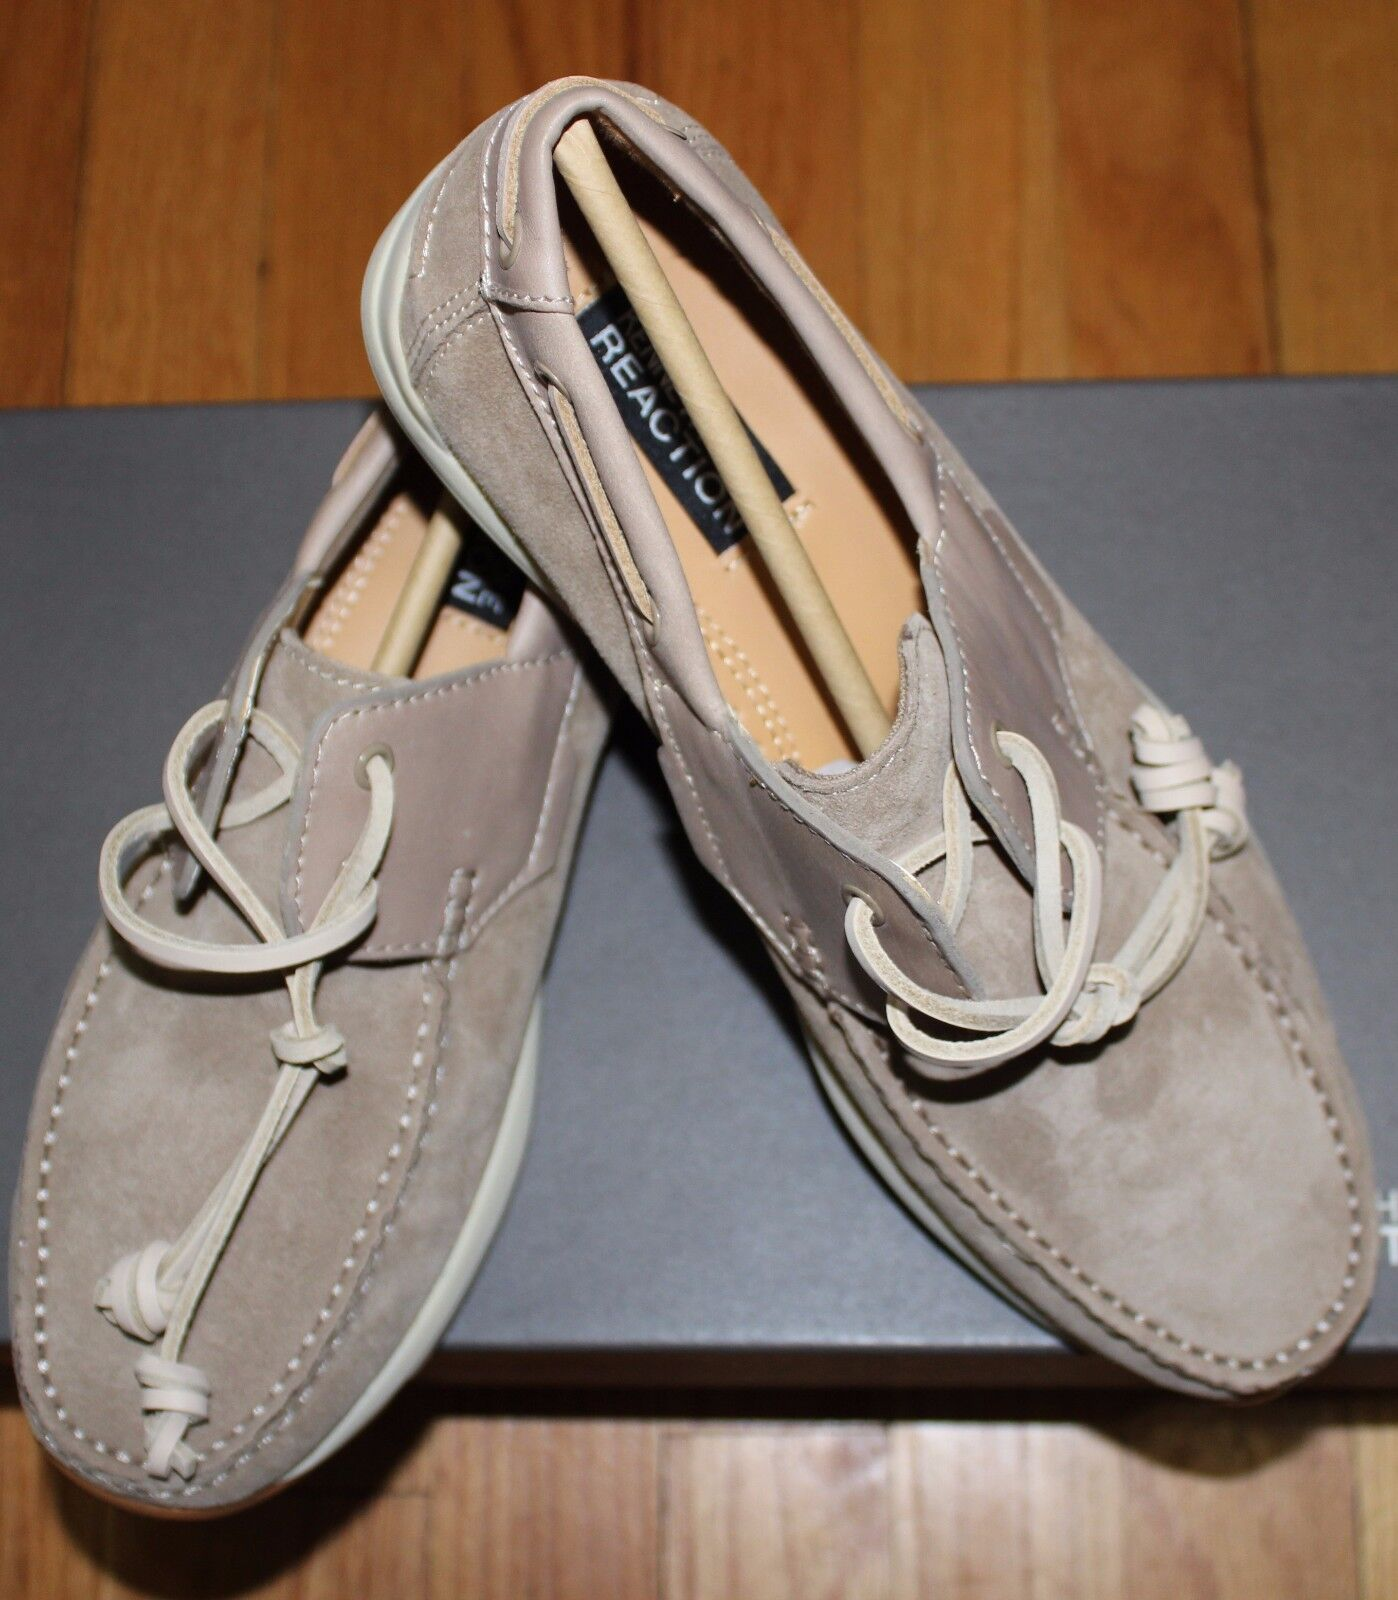 108 KENNETH COLE REACTION BEIGE MET-RO STATION BOAT SHOES SZ 9M US